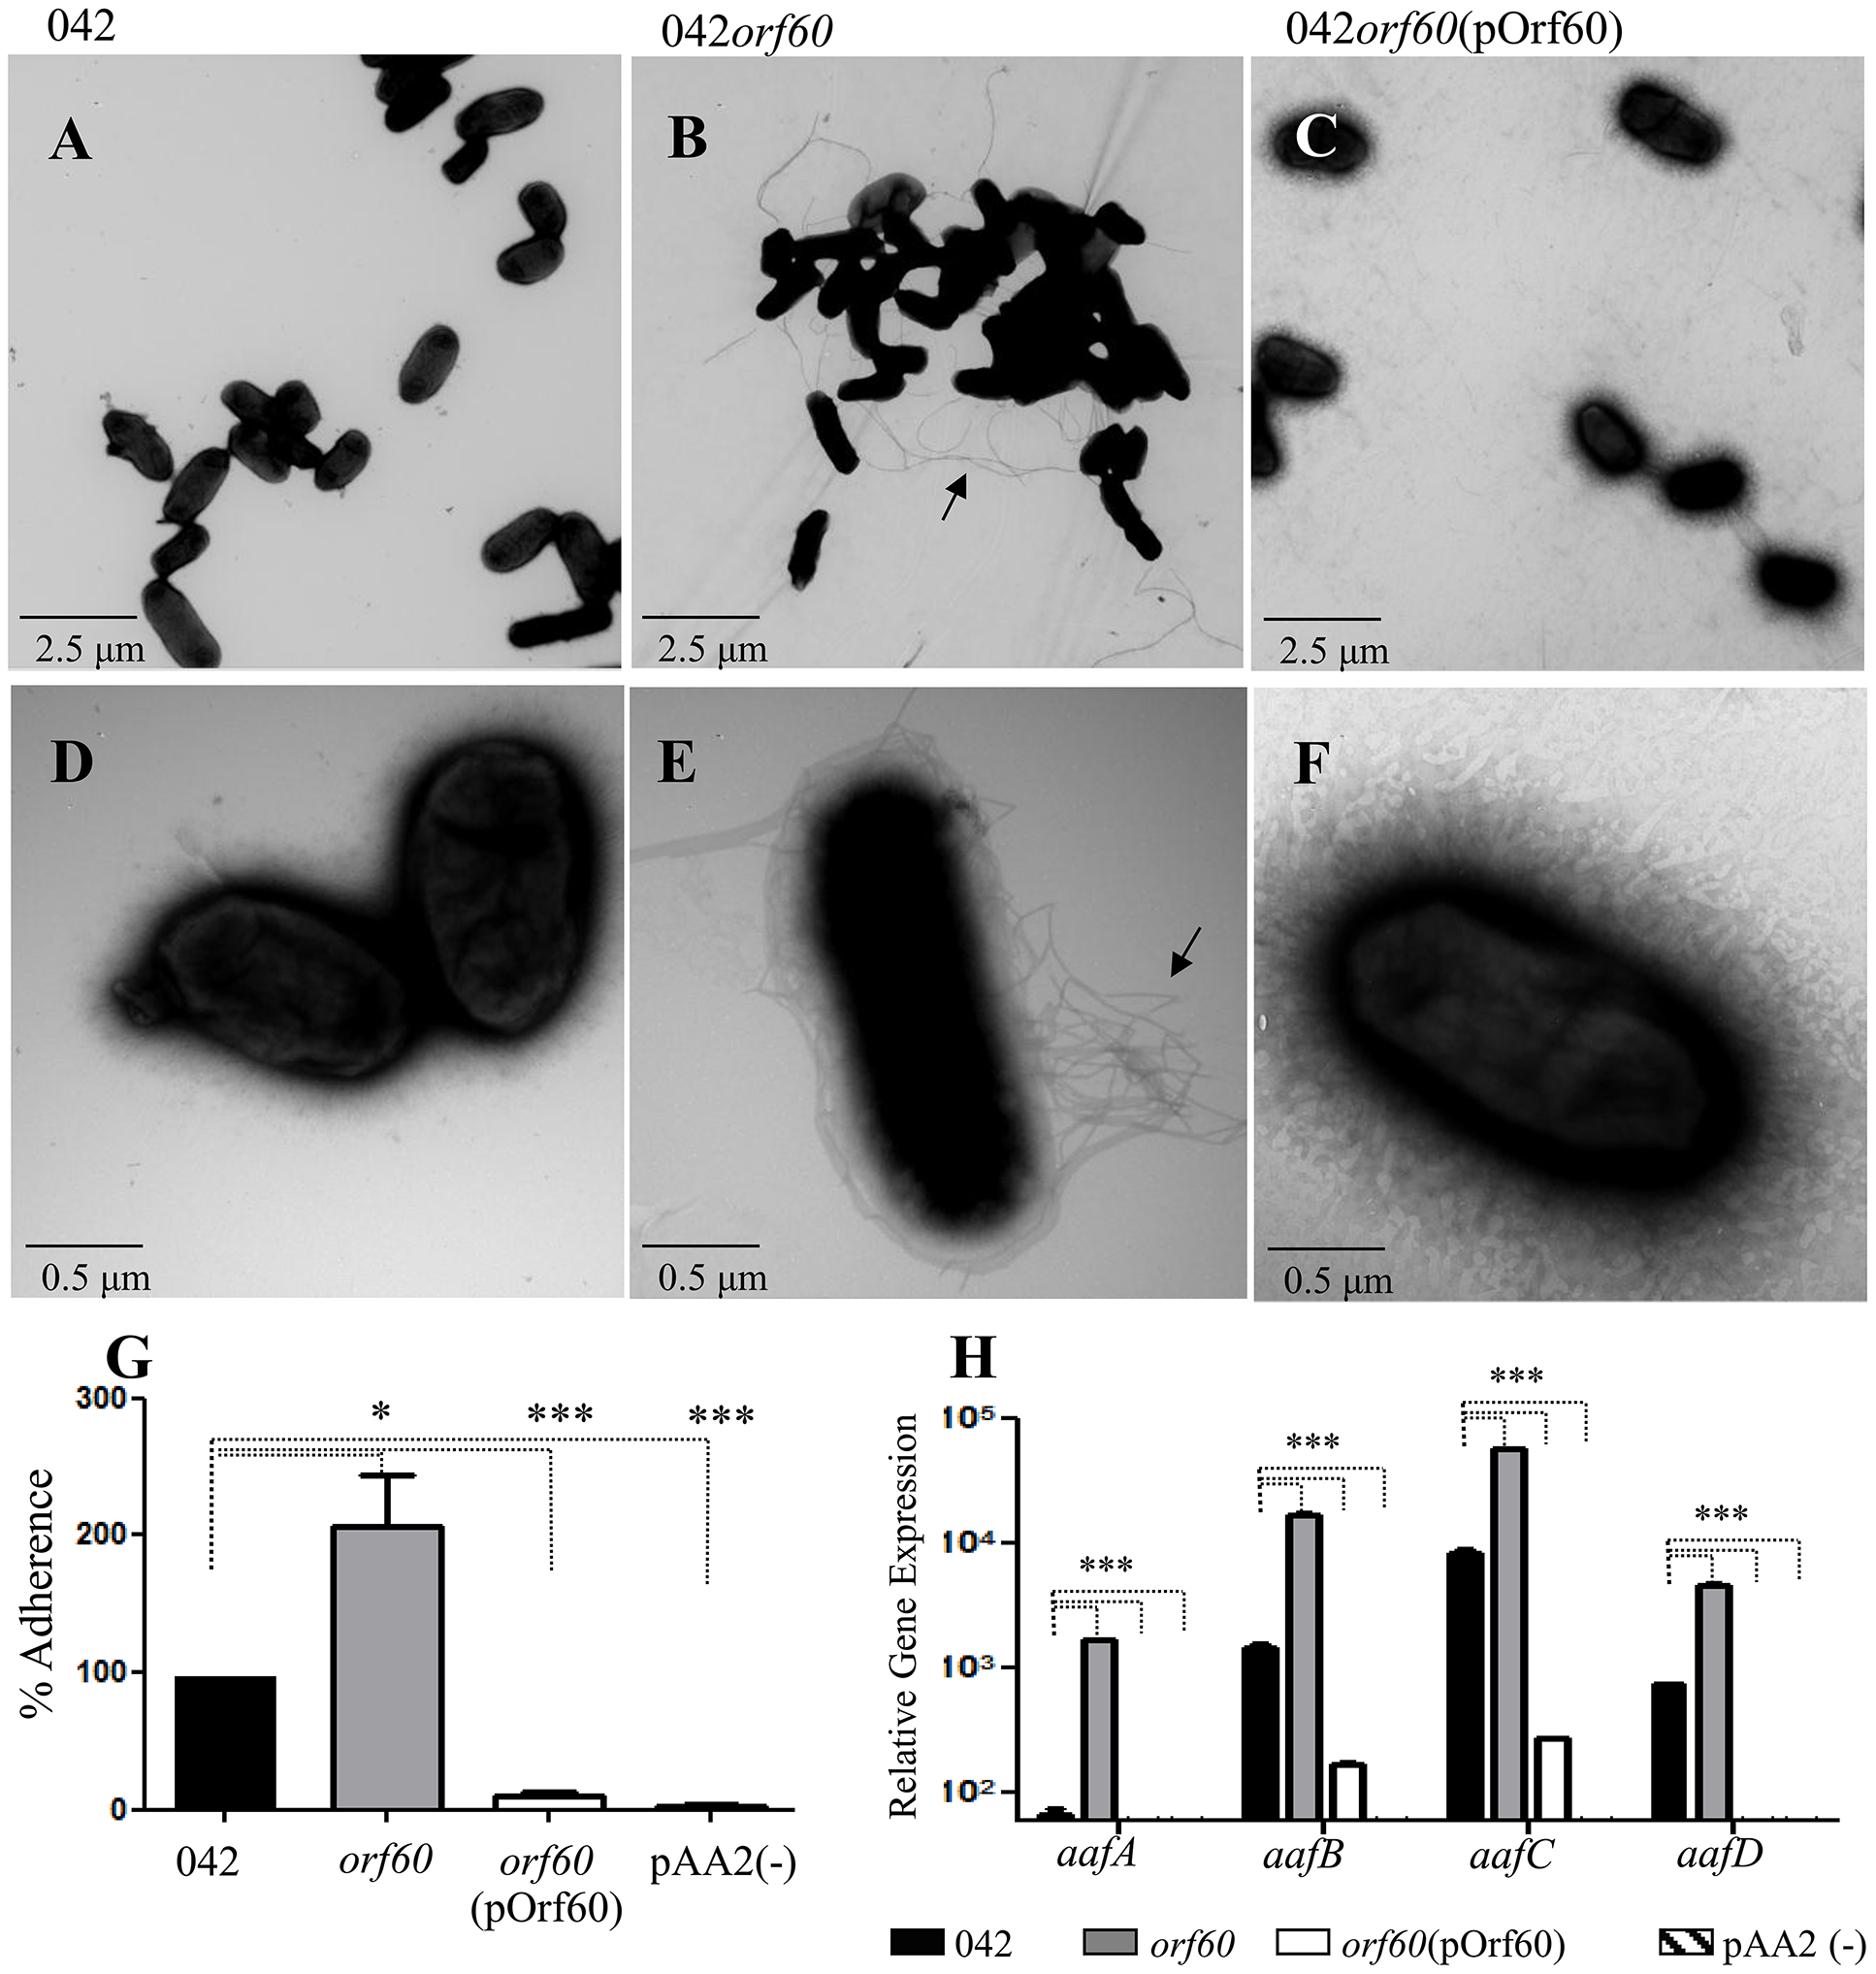 Increased expression of AAF in 042<i>orf60</i>.